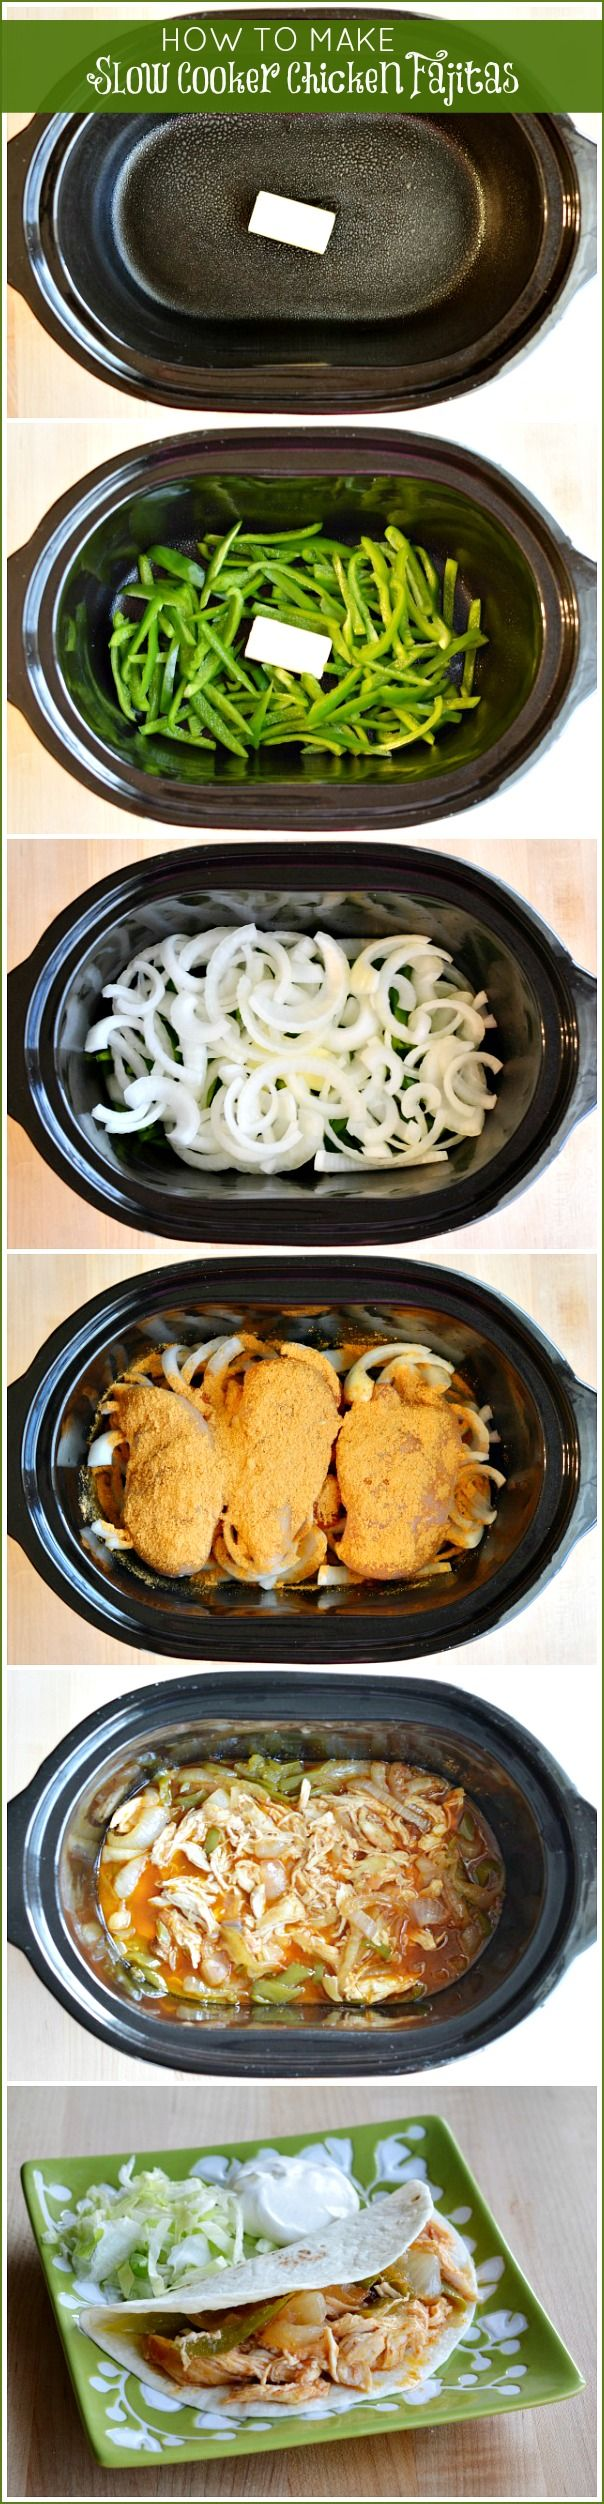 How to Make Slow Cooker Chicken Fajitas by foodfamilyfinds #Fajitas #Chicken #Slow_Cooker